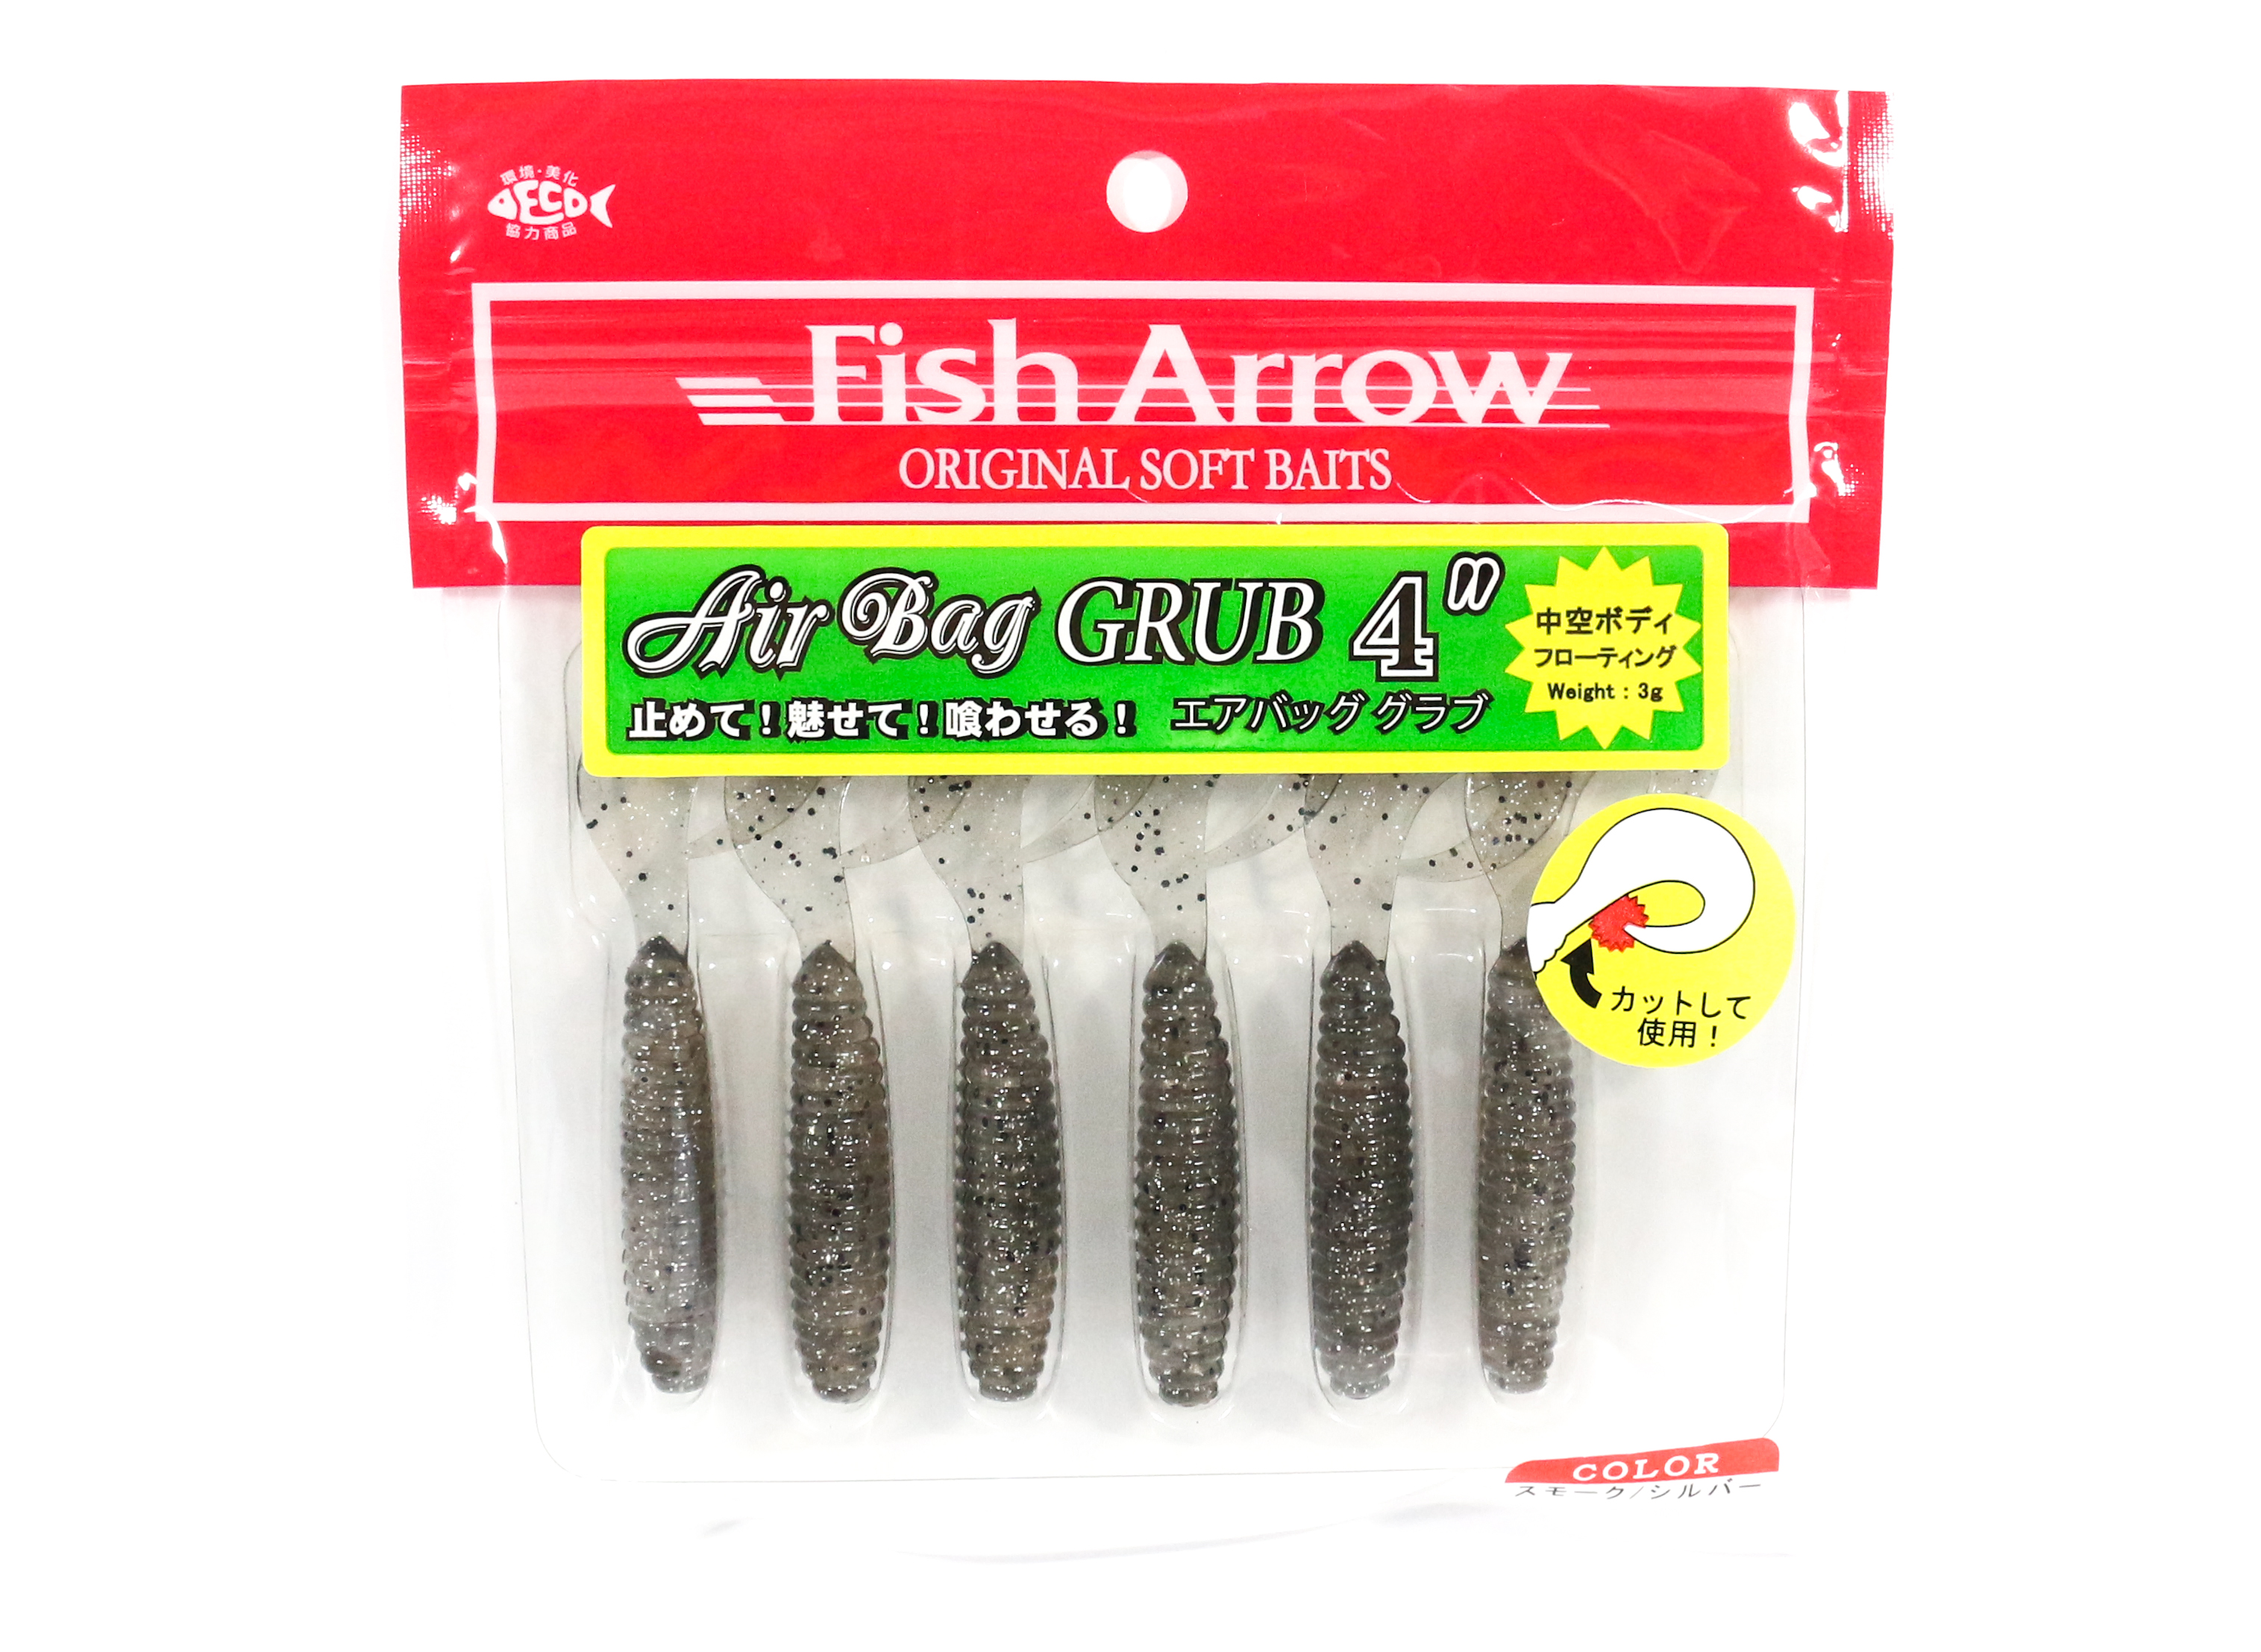 Fish Arrow Soft Lure Air Bag Grub 4 Inch 6 Piece per pack #06 (9389)